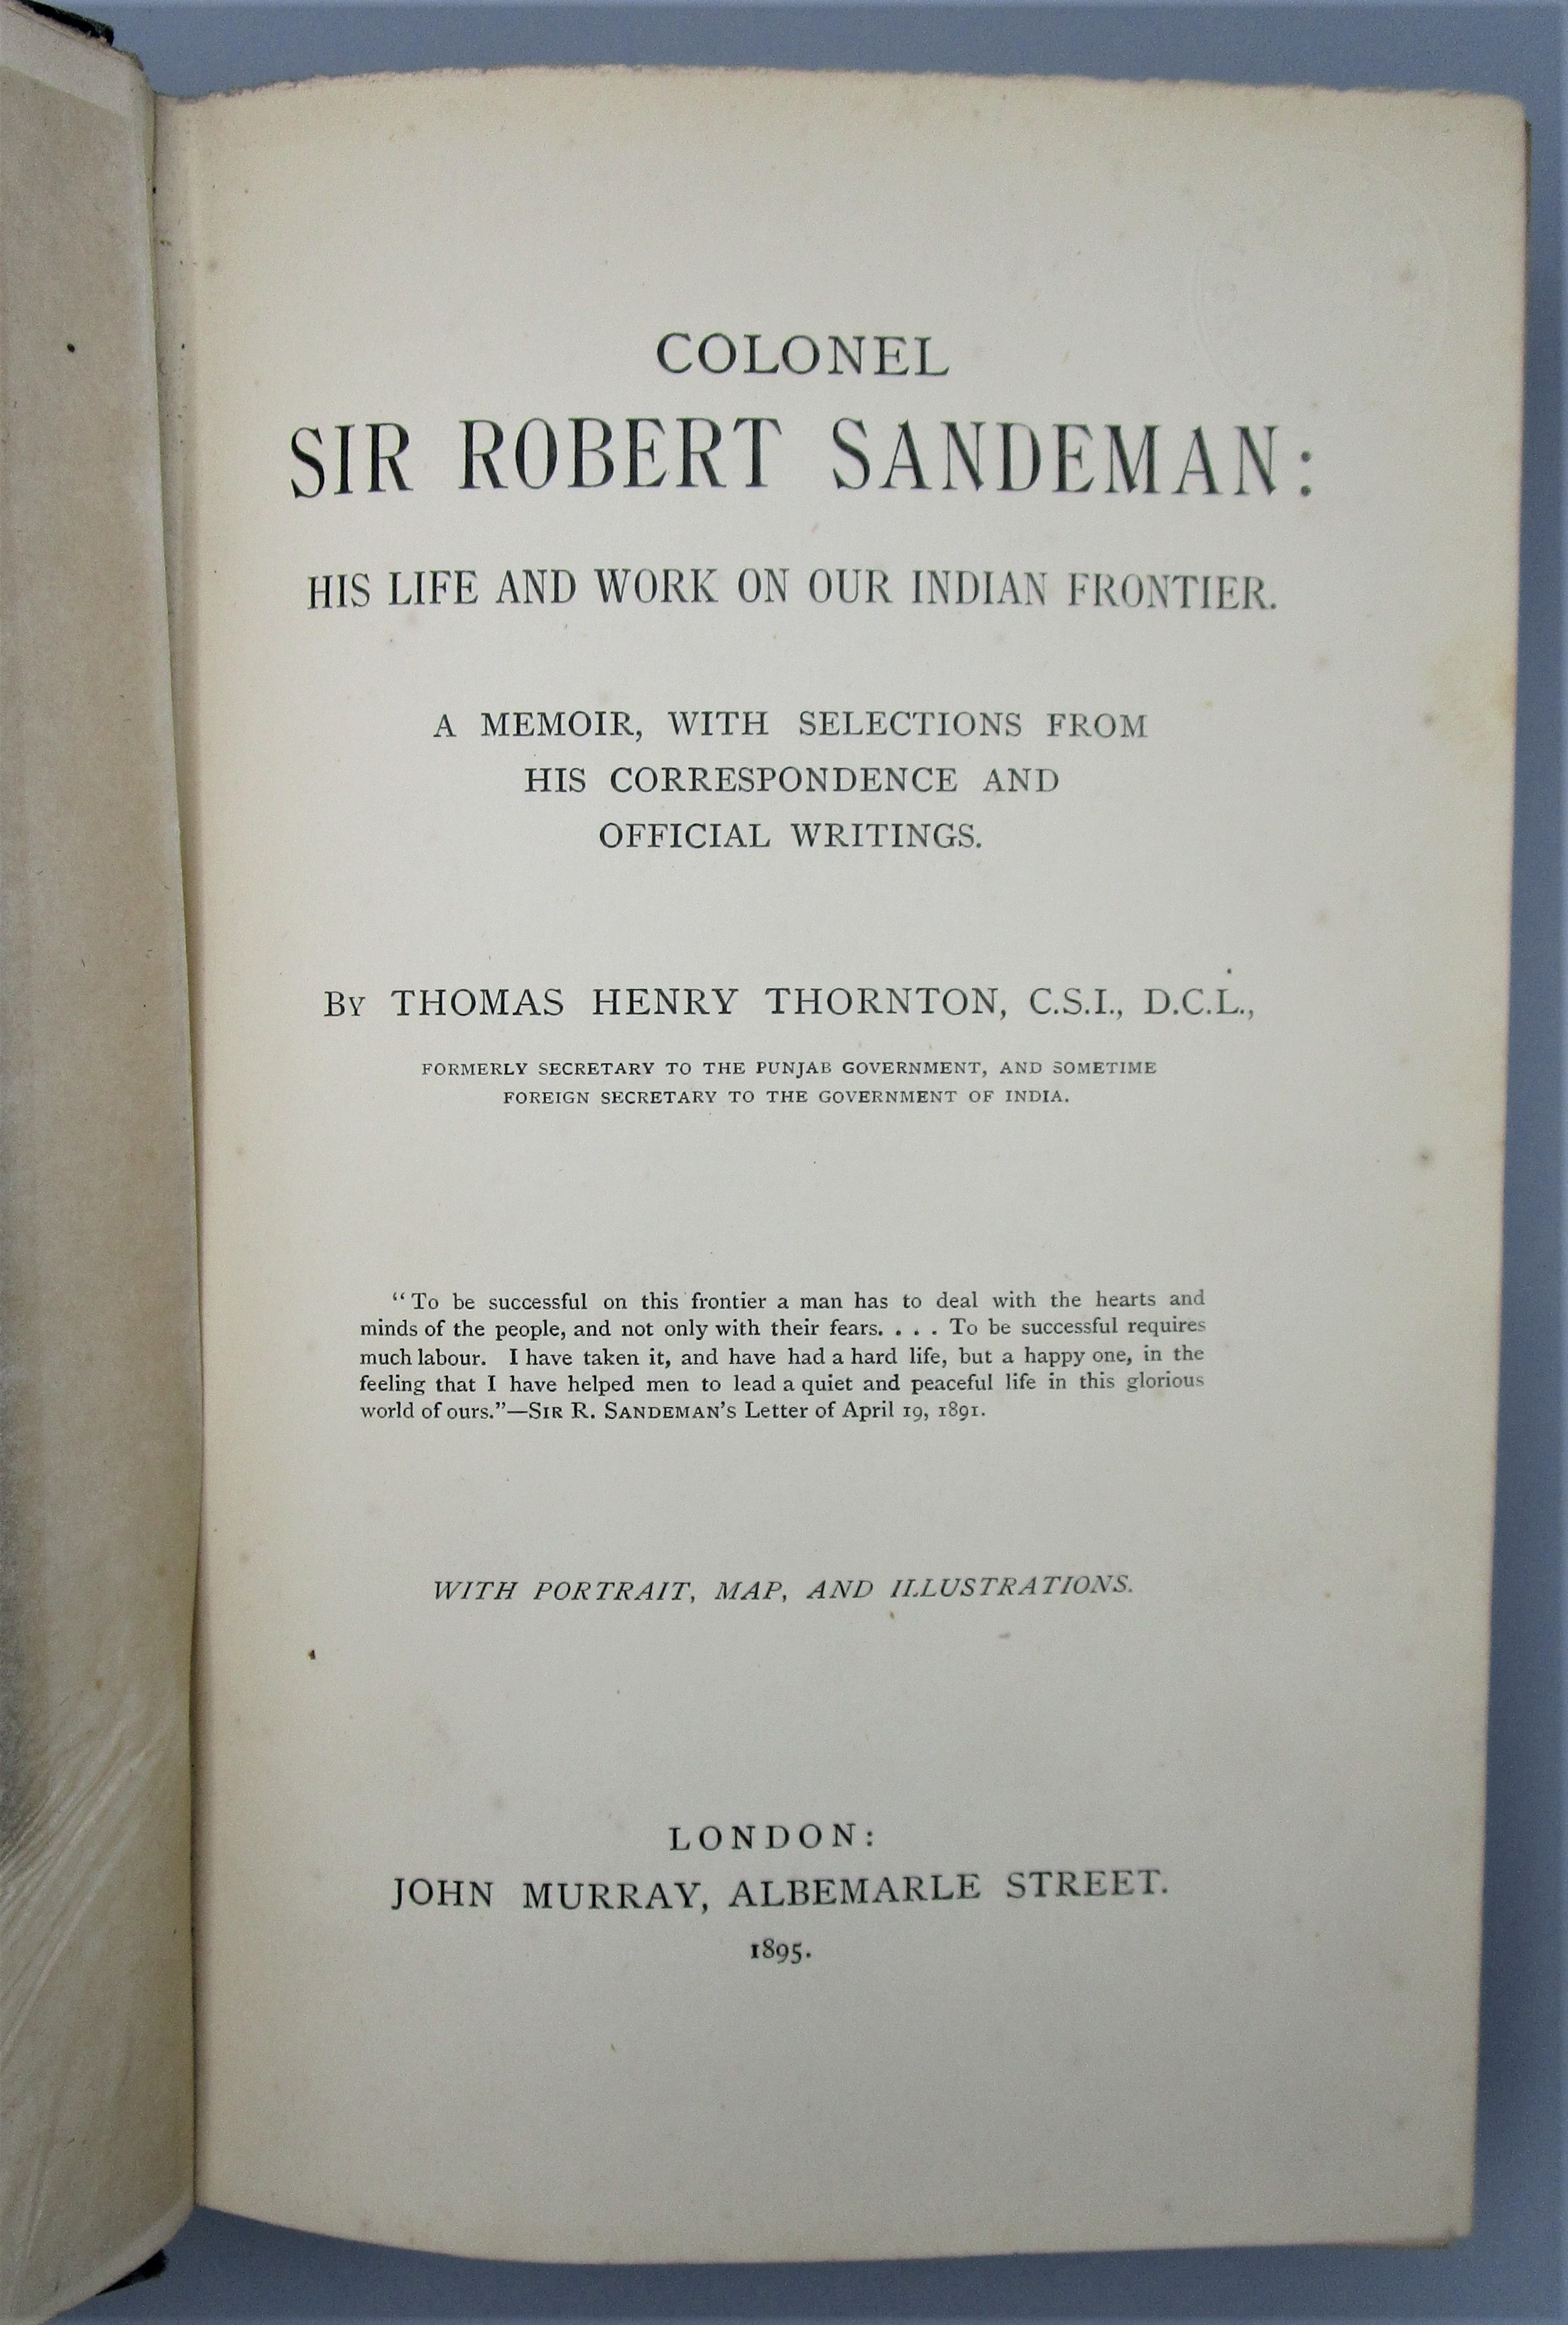 COLONEL SIR ROBERT SANDEMAN: HIS LIFE AND WORK ON OUR INDIAN FRONTIER, by Thomas Henry Thornton - 1895